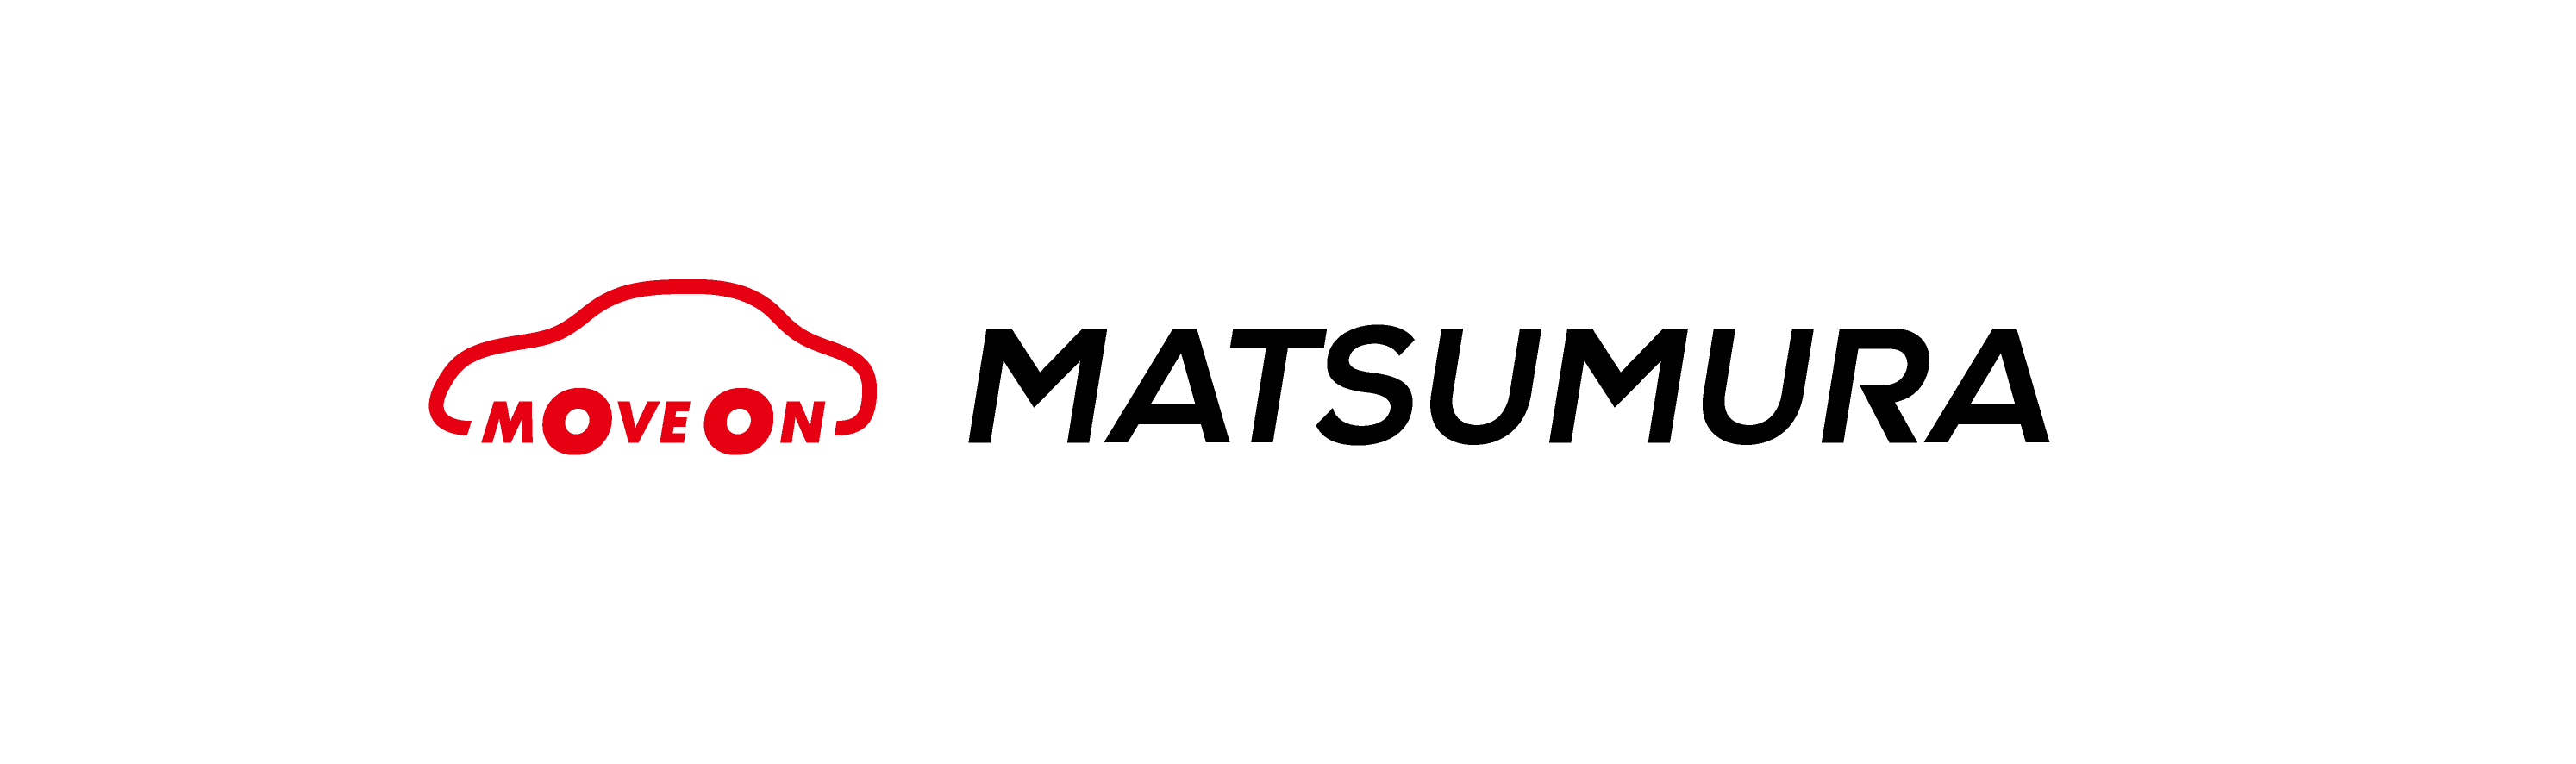 MATSUMURA is a global company in  aluminum casting industry